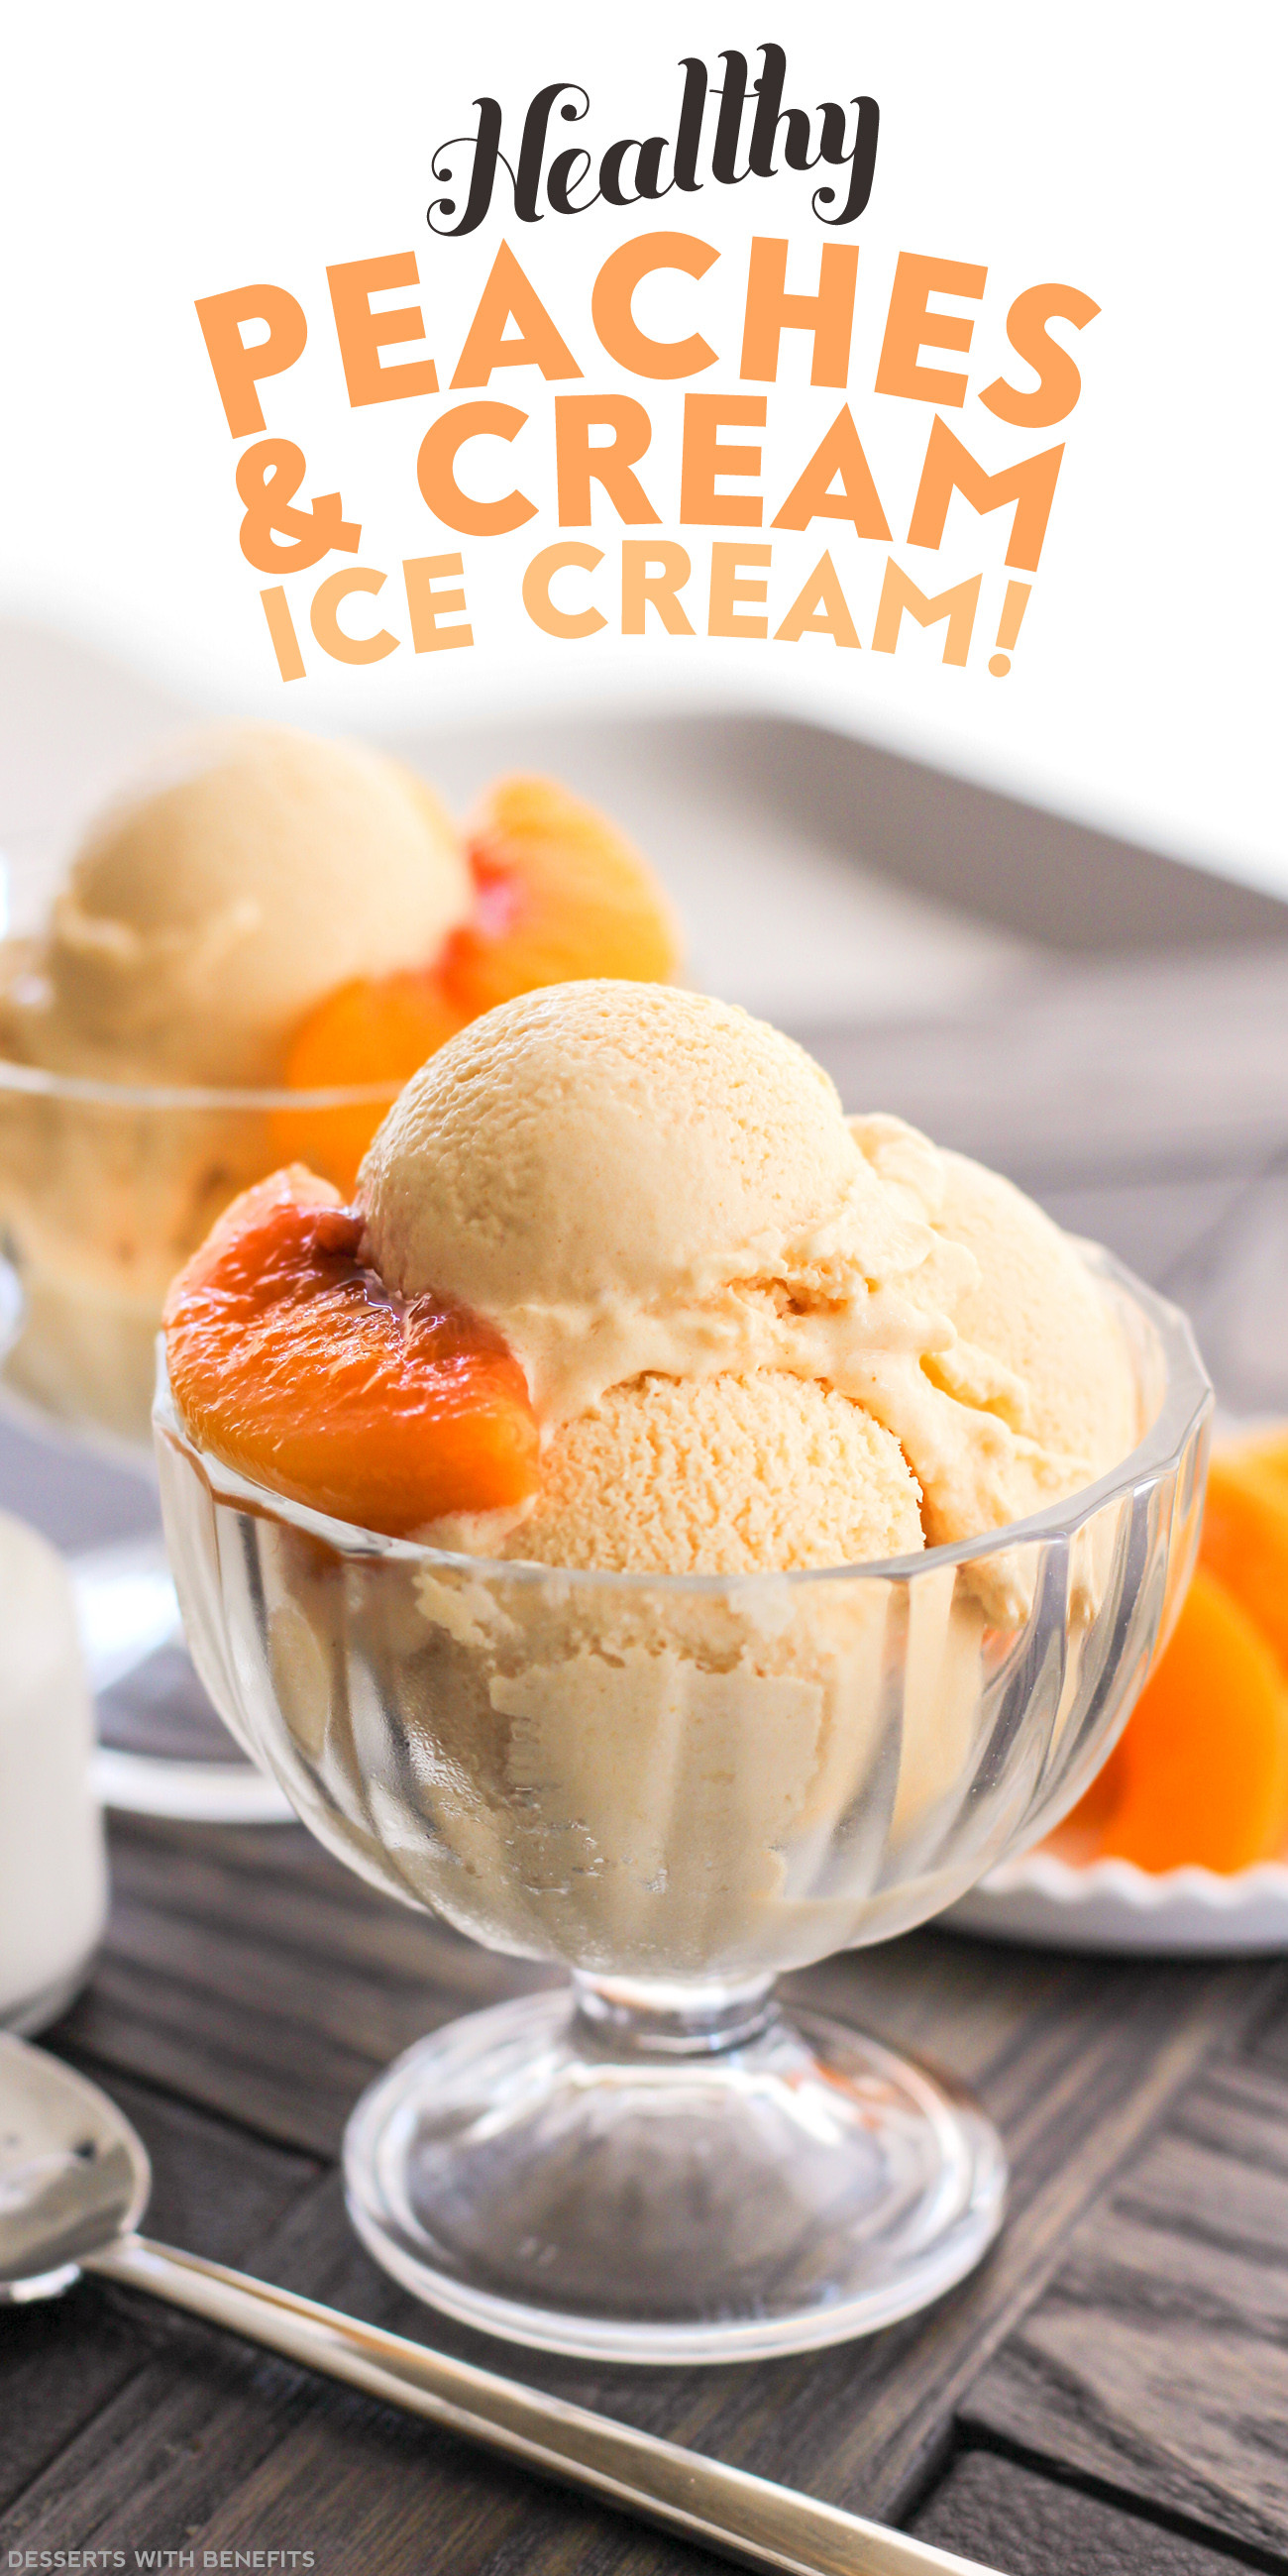 Healthy Peach Recipes  Healthy Peaches and Cream Ice Cream Recipe No Sugar Added